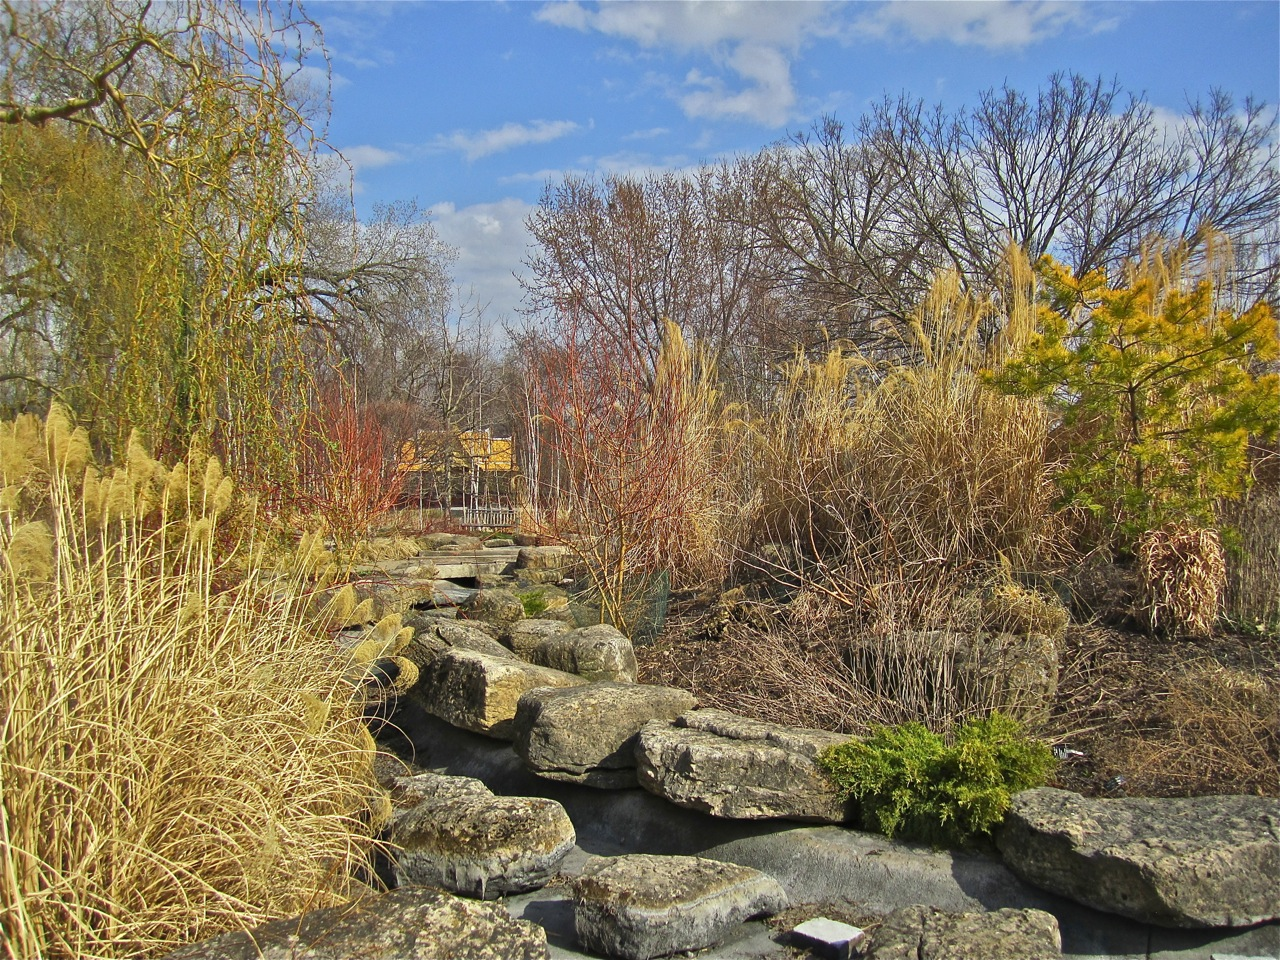 The Olbrich Botanical Gardens in March – enclos*ure